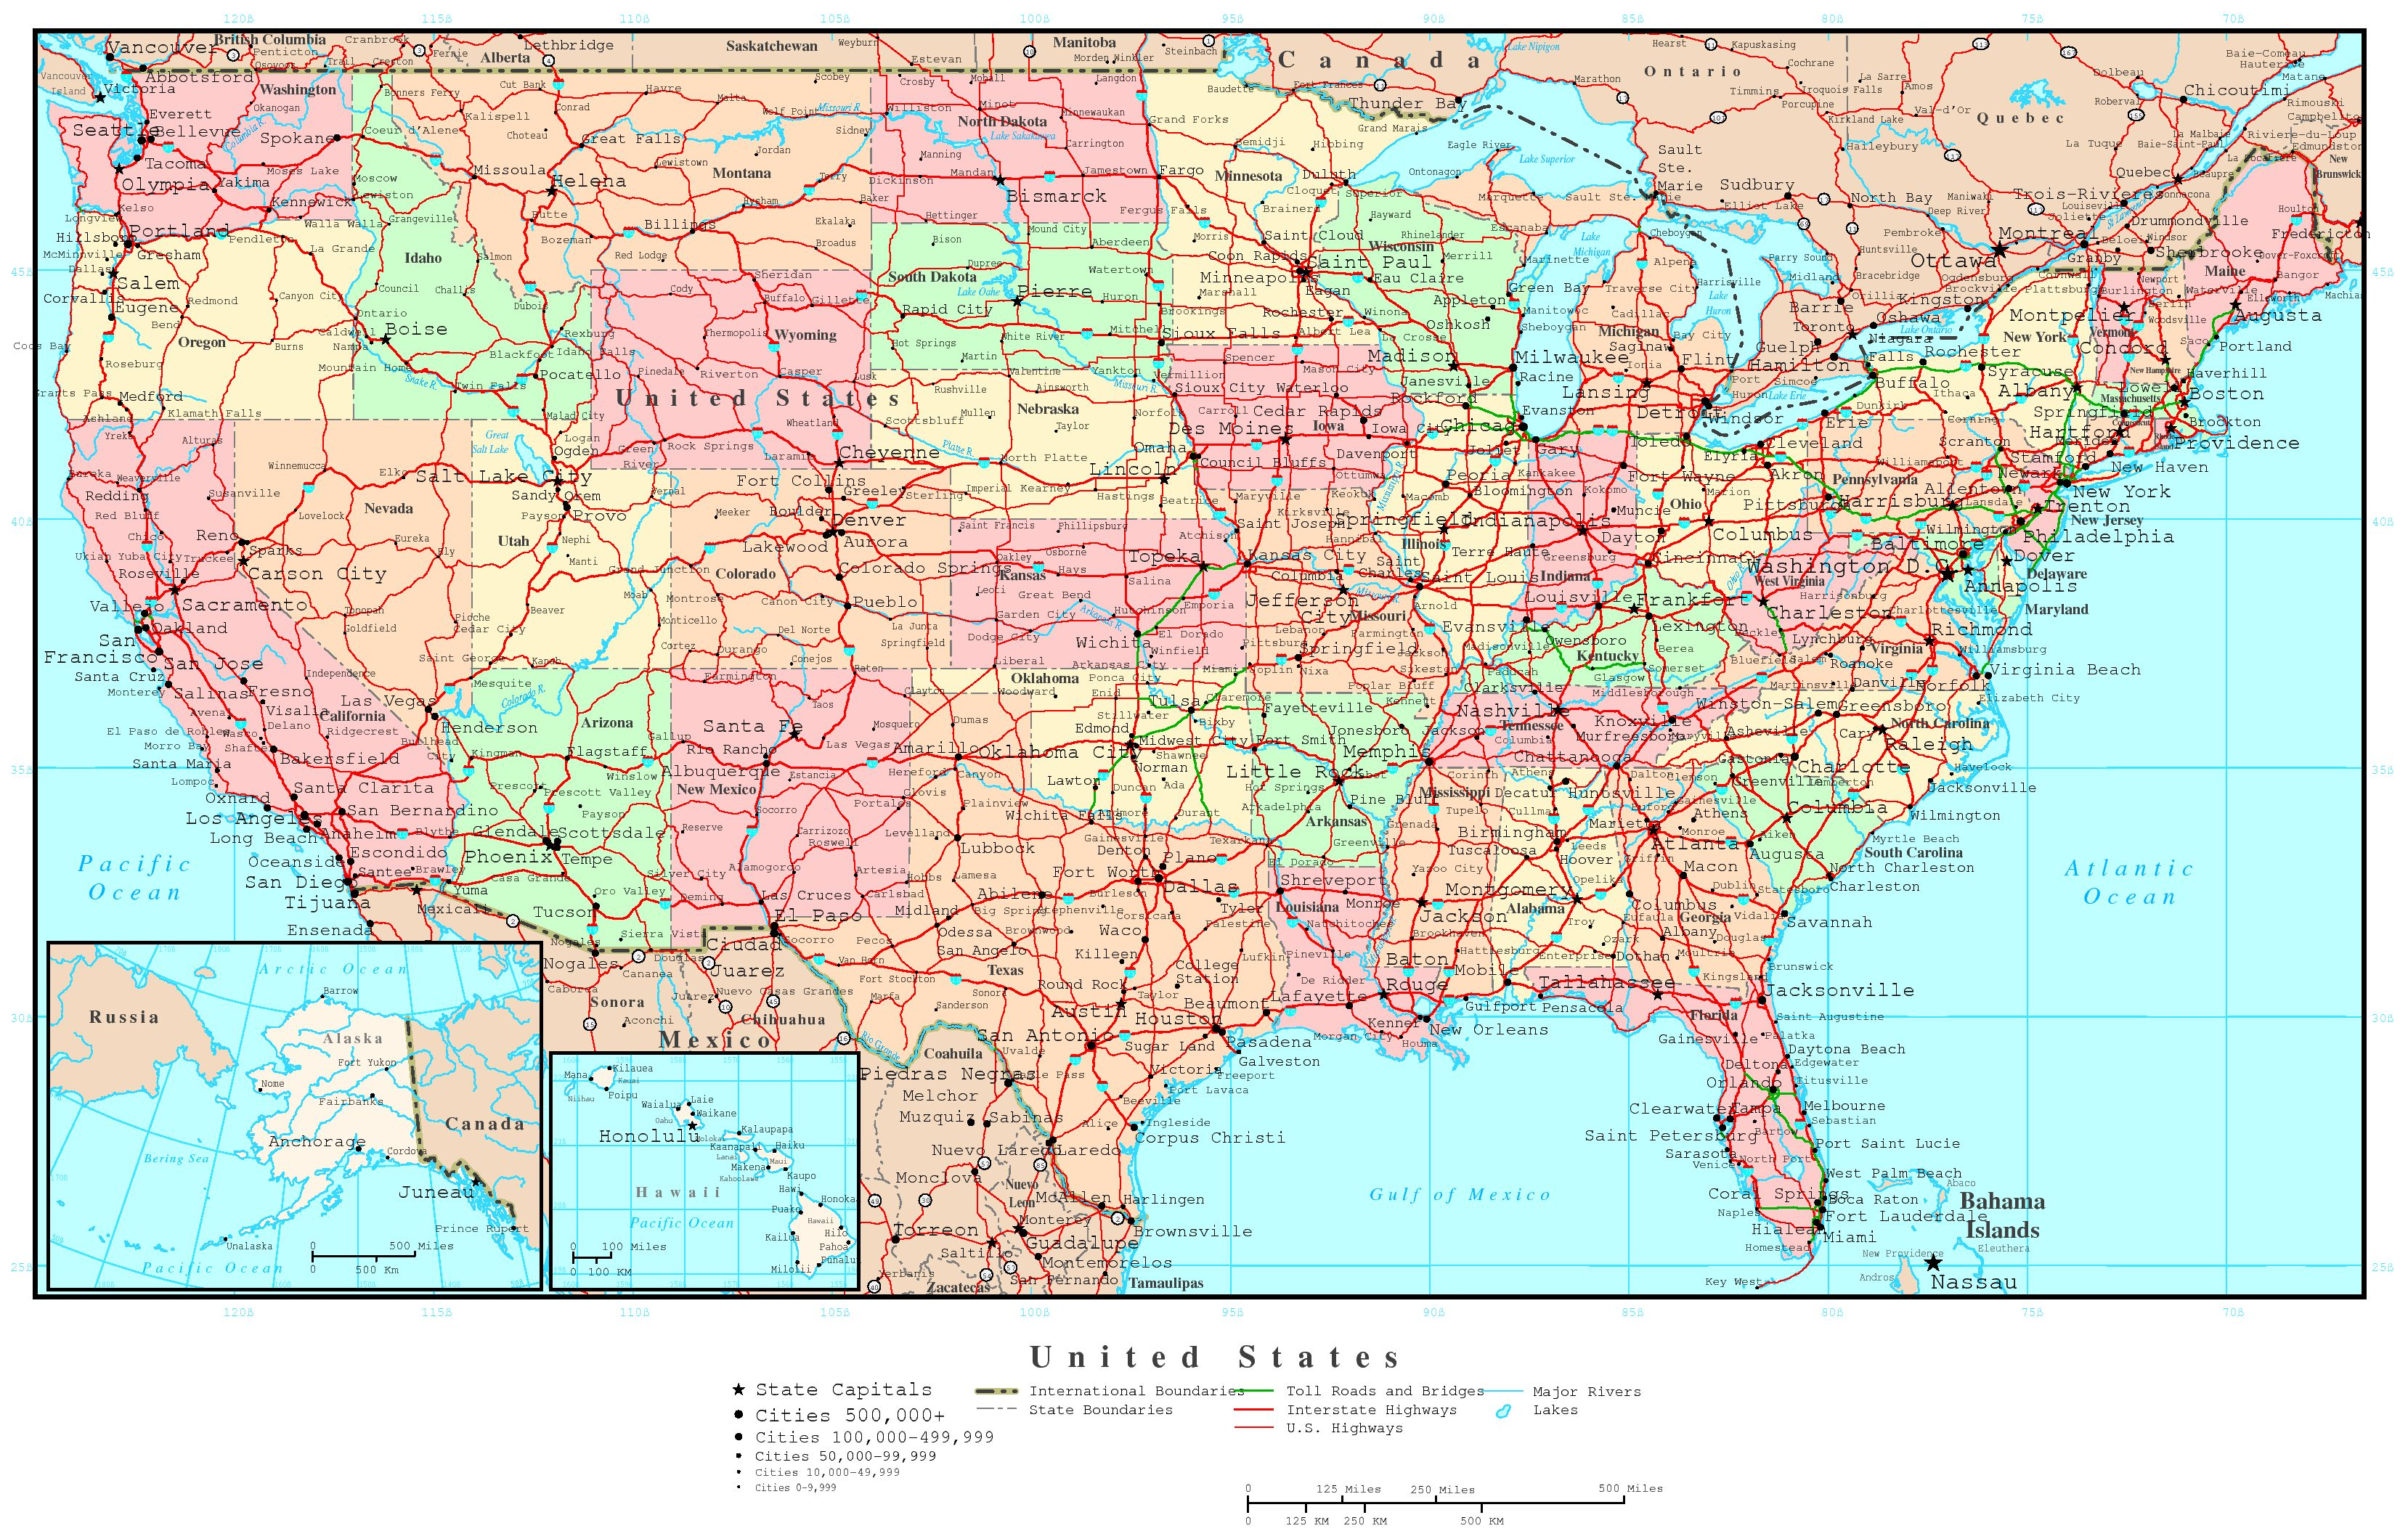 USA Road Map United States Interstate Highway Map United States - Map of the us including interstates and major cities